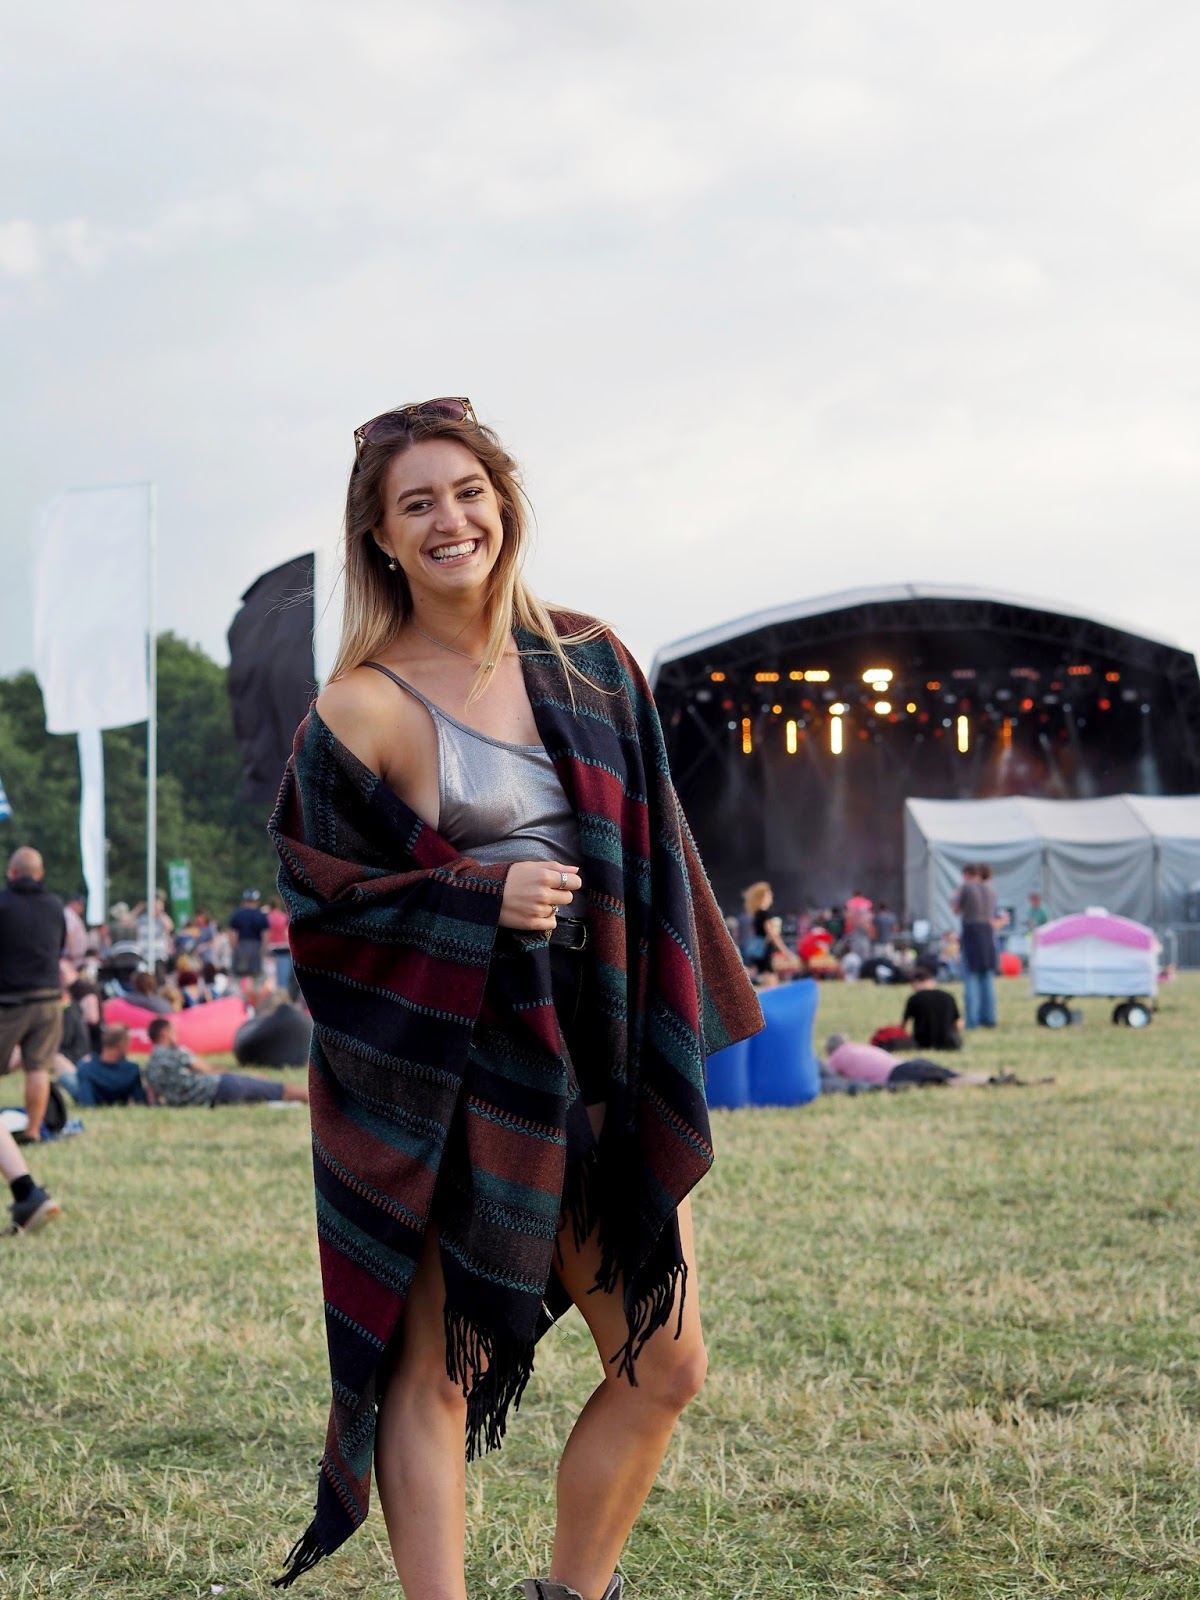 Girl at Festival wearing a Cape